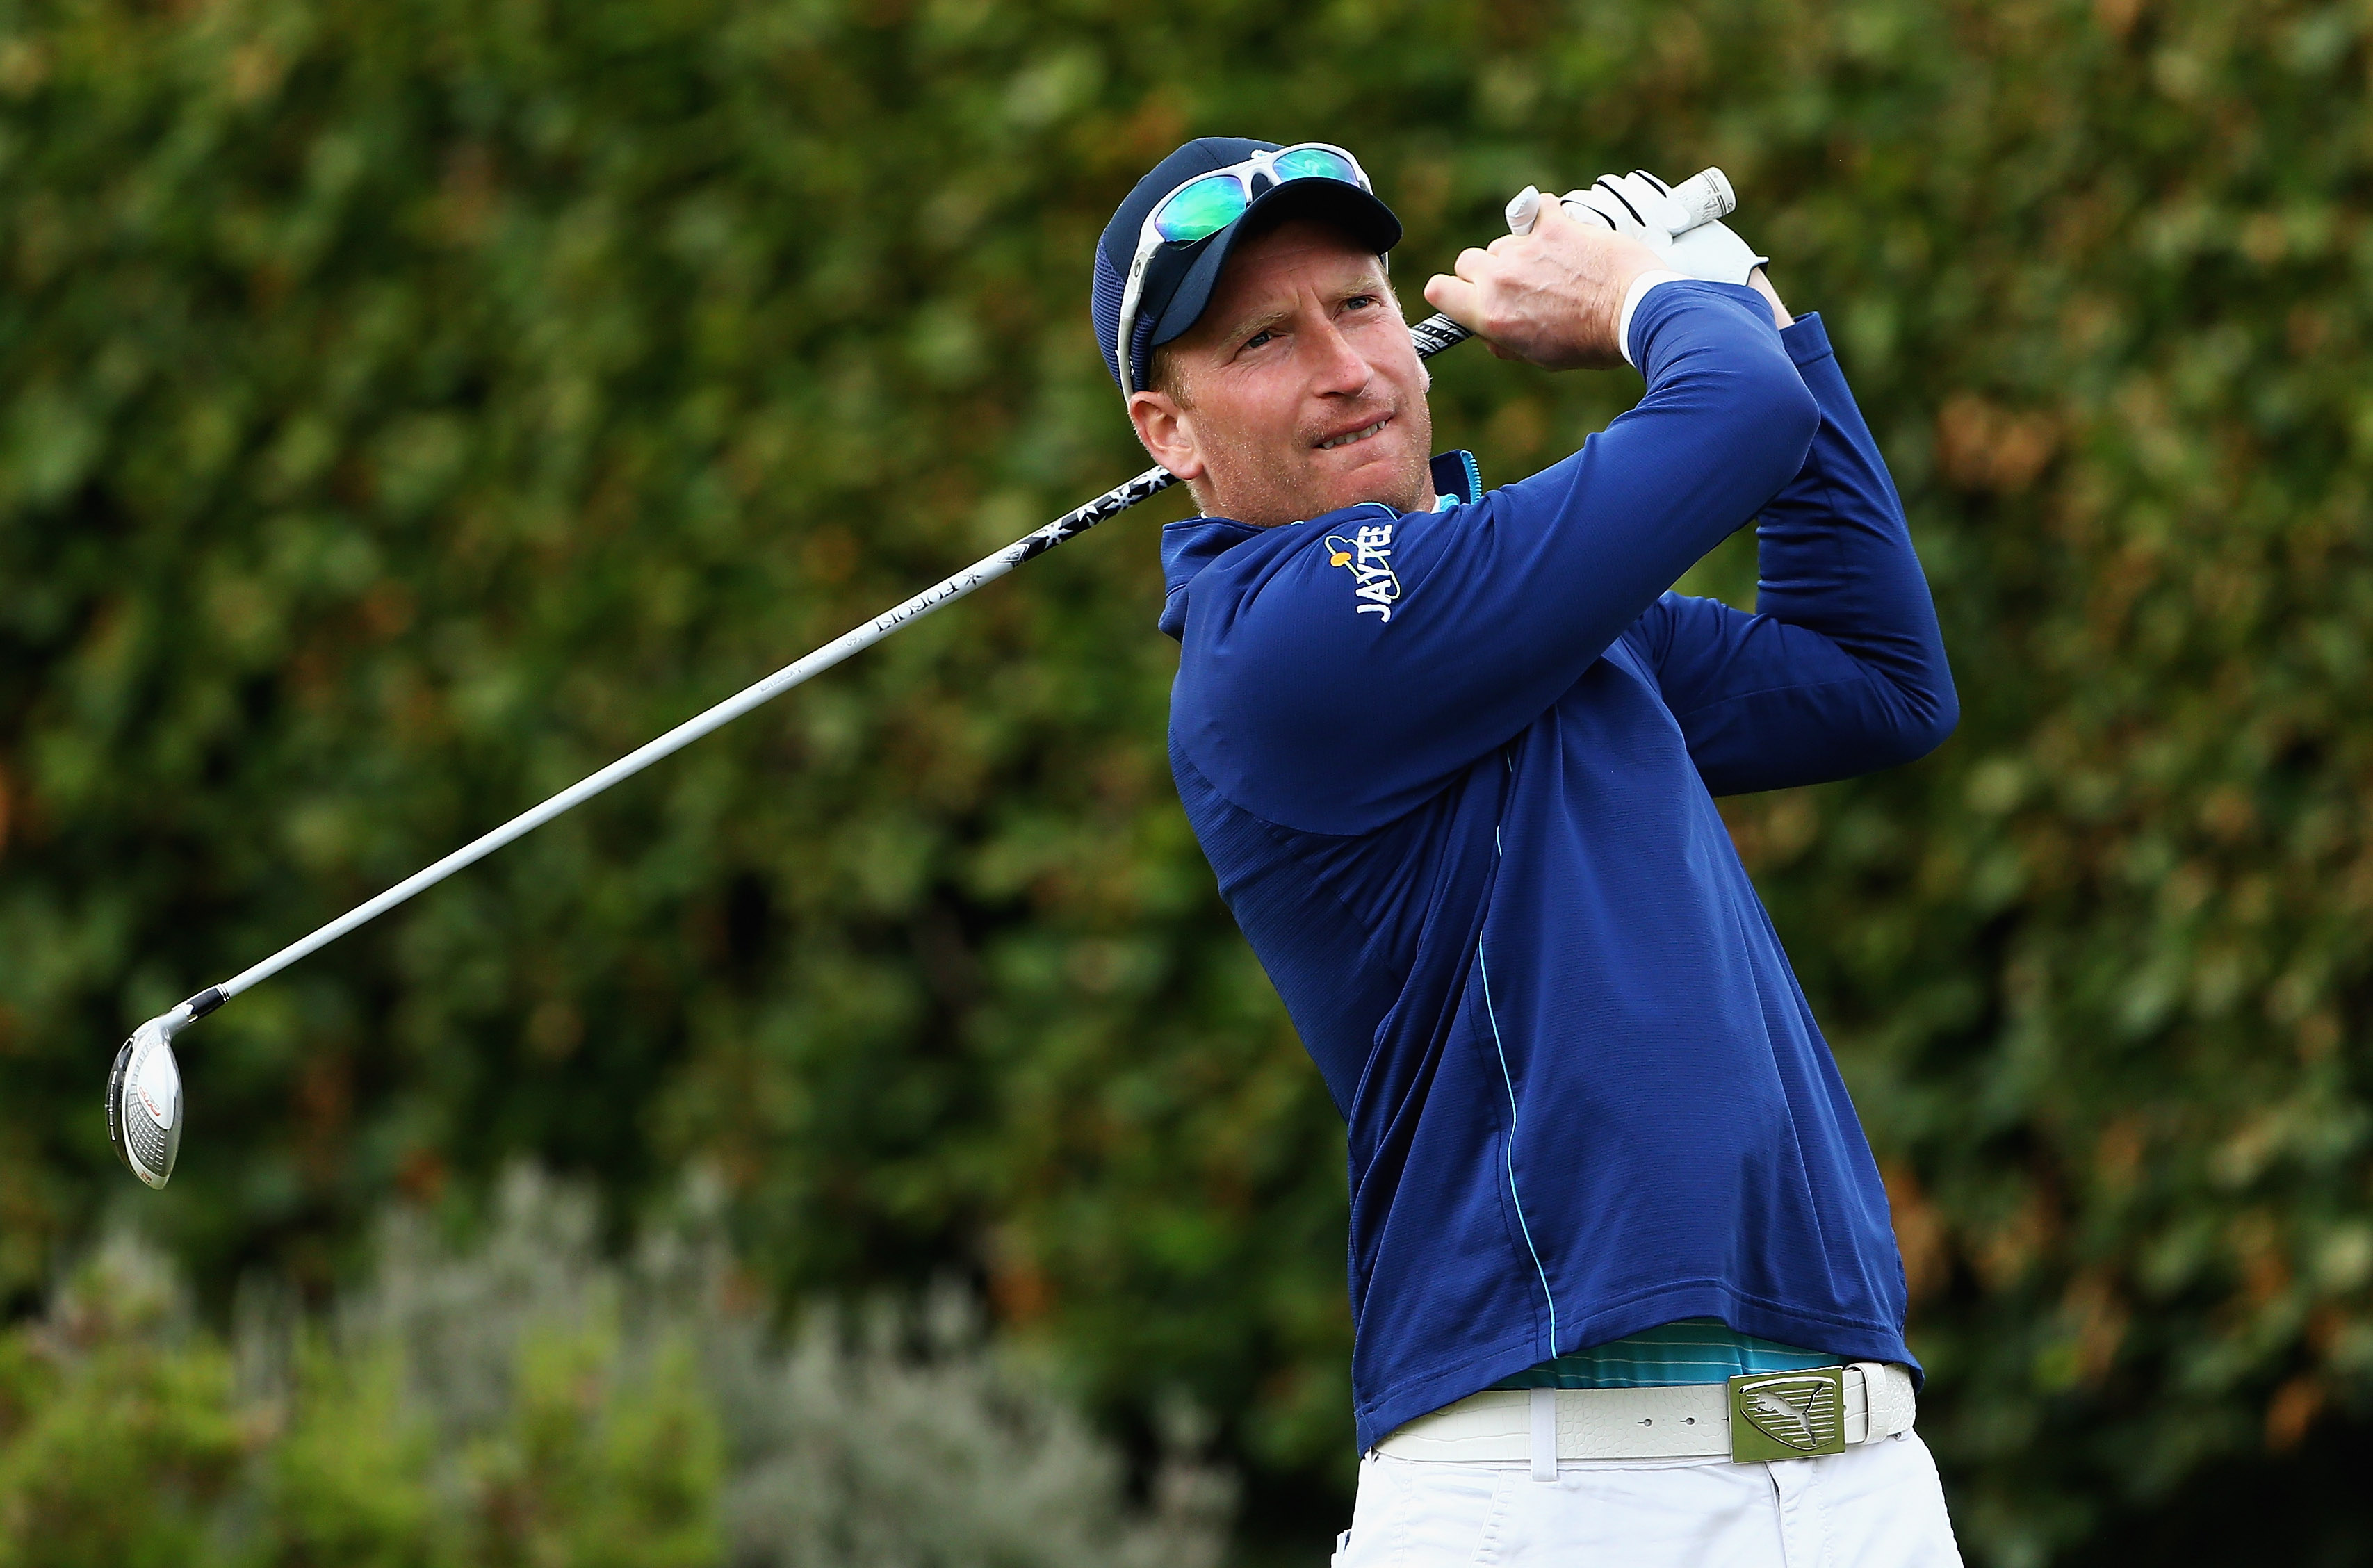 Steven Tiley (ENG) leading qualifier at Local Final Qualifying - Credit R&A